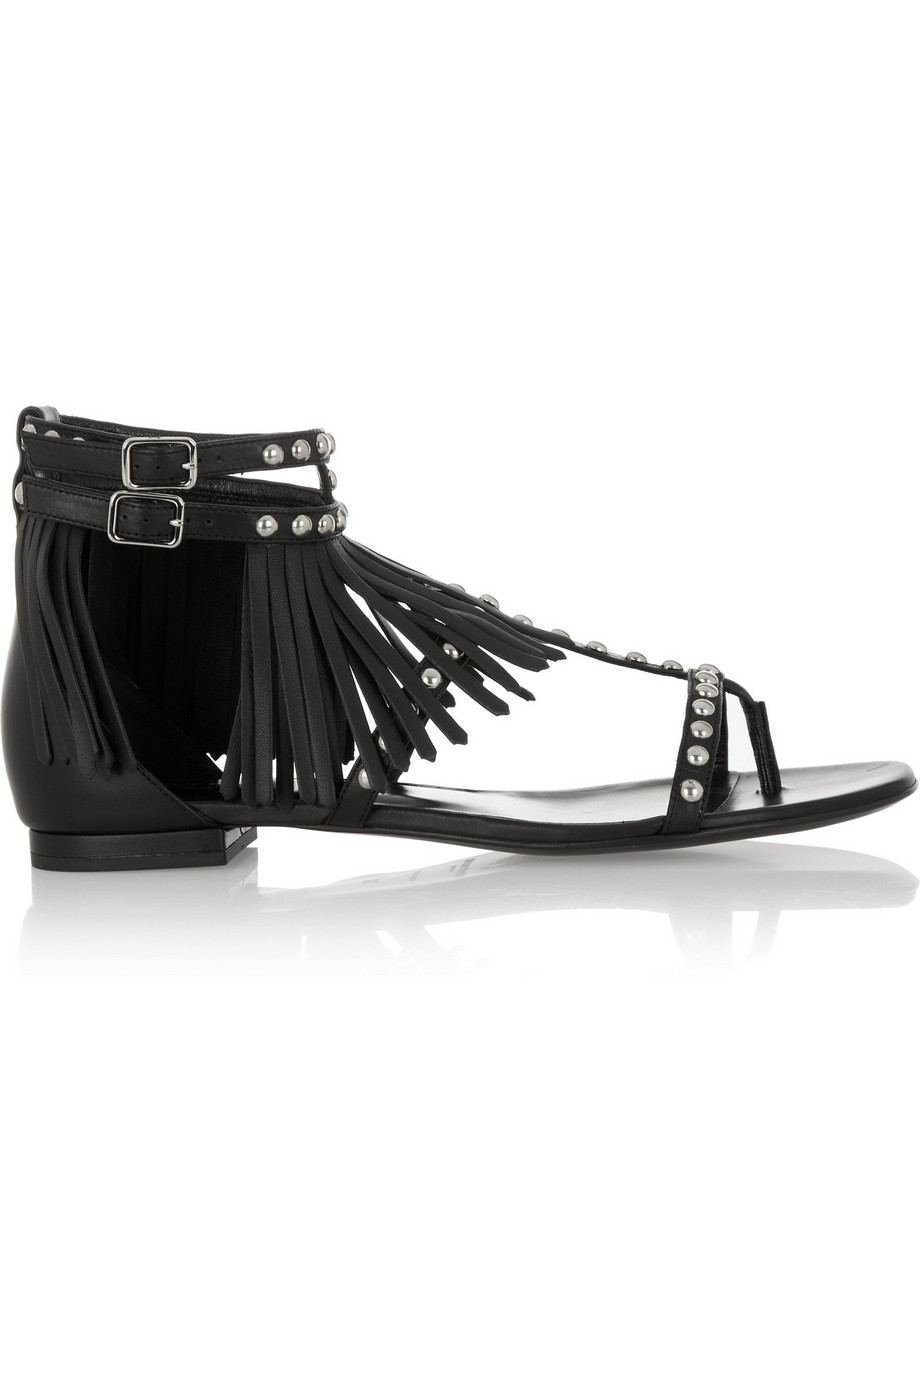 Saint Laurent Studded and Fringed Leather Sandals, Black, Women's US Size: 7.5, Size: 38